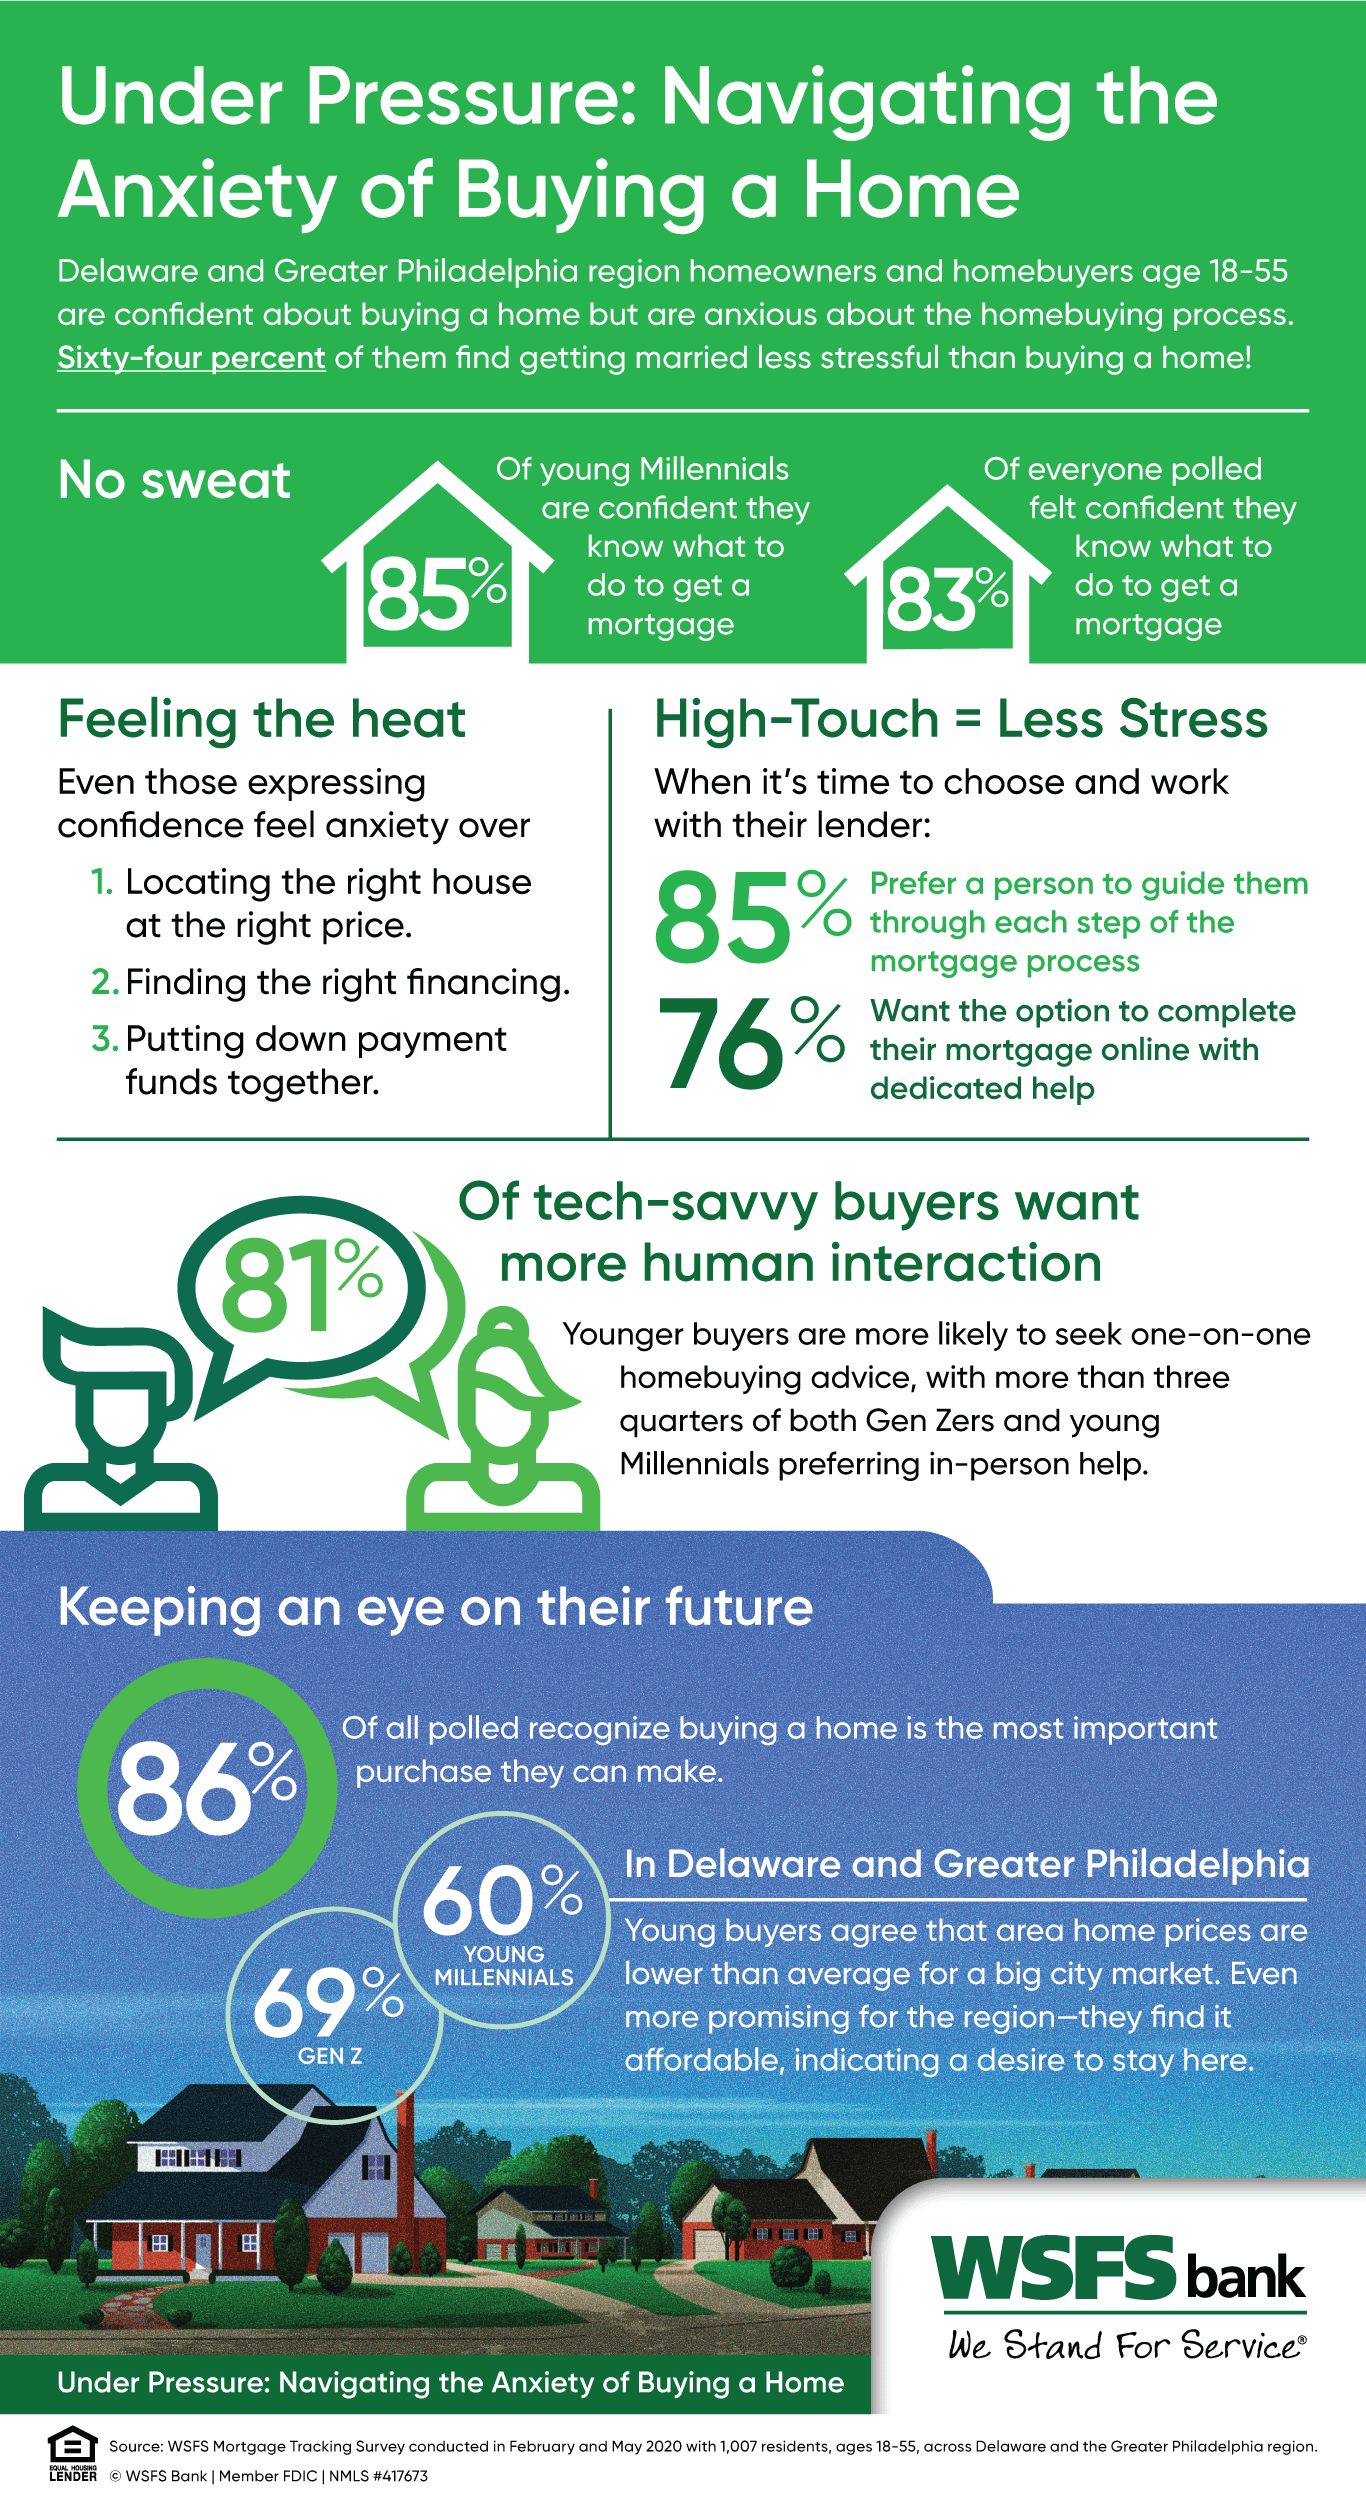 Delaware and Greater Philadelphia region homeowners and homebuyers age 18-55 are confi dent about buying a home but are anxious about the homebuying process.